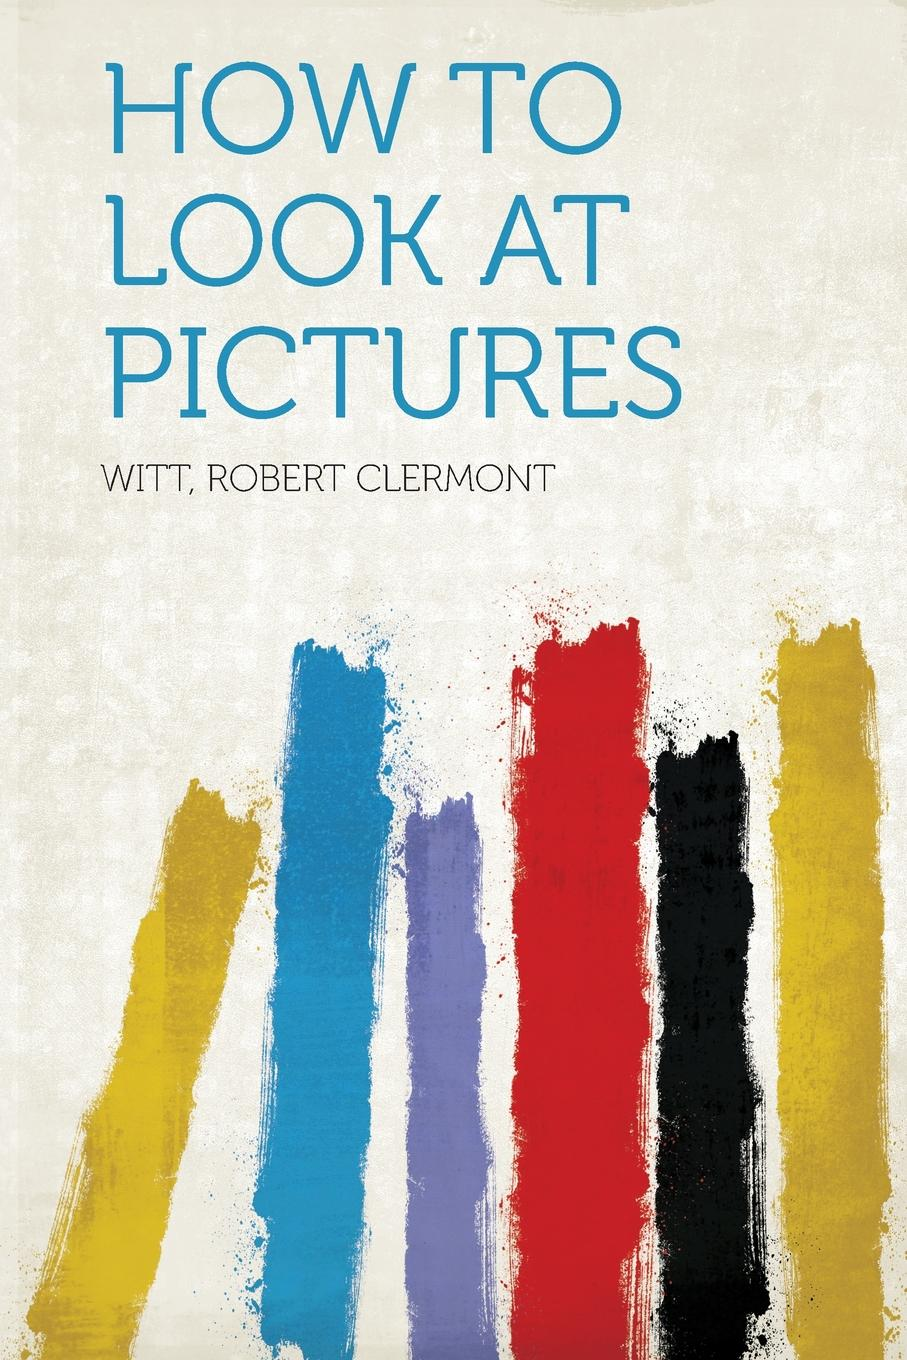 How to Look at Pictures